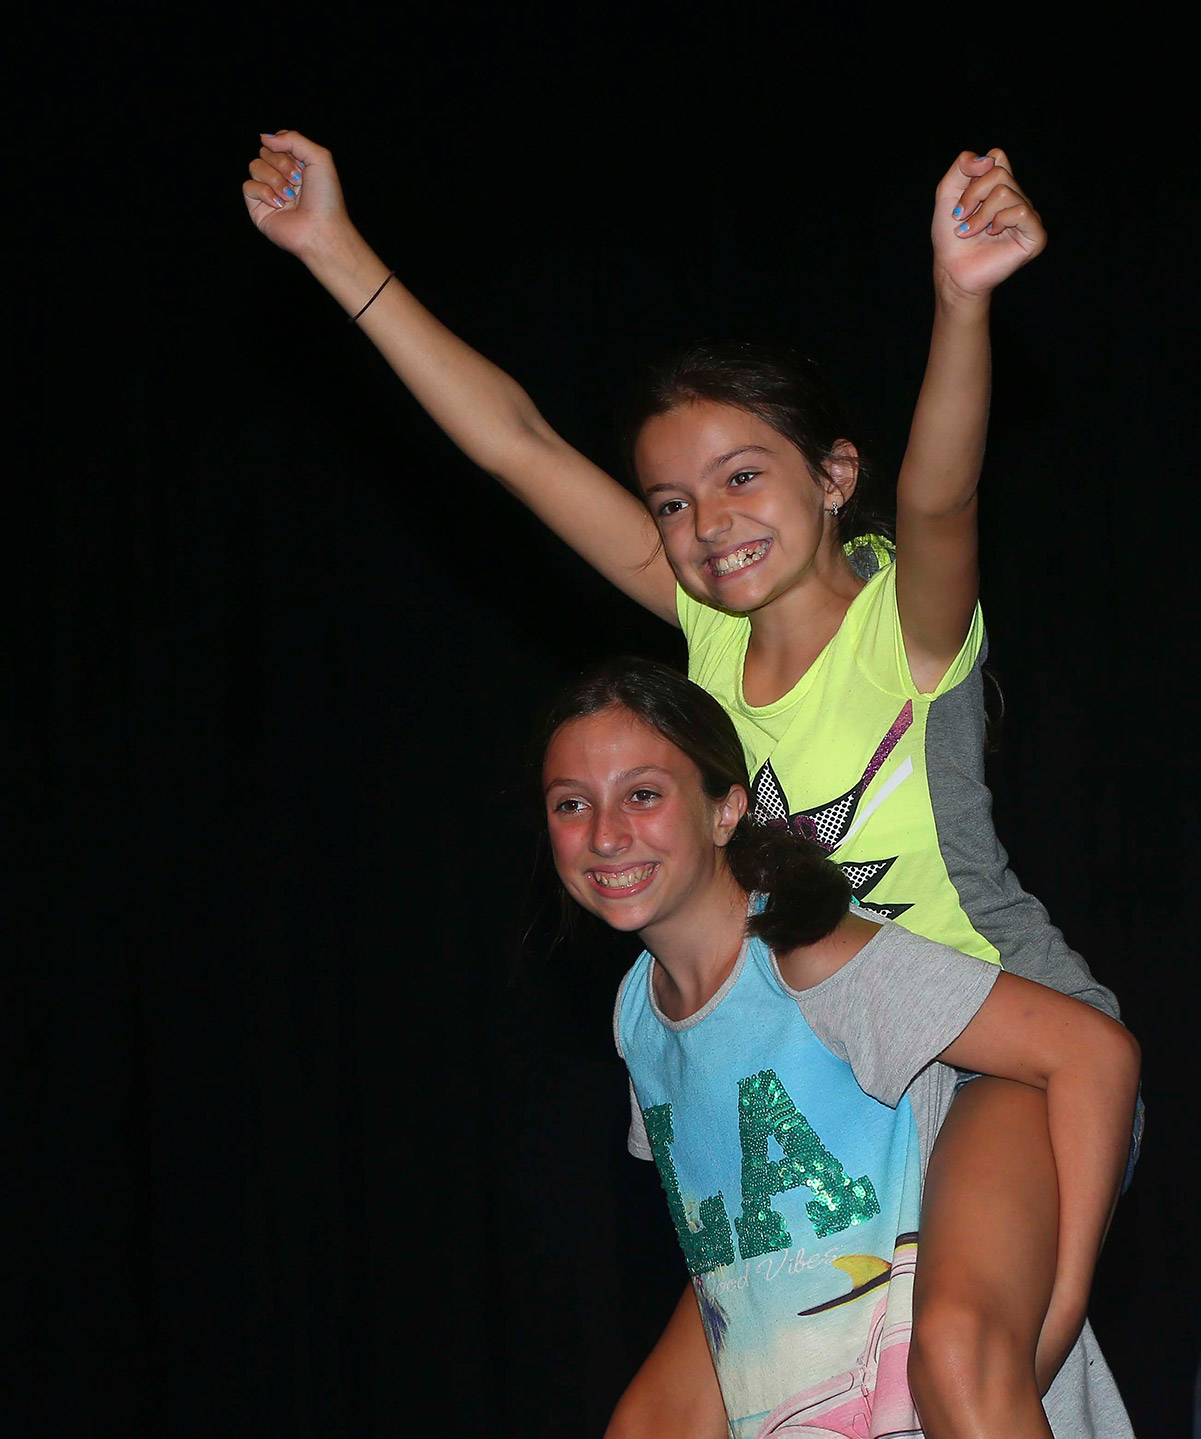 A young girl happily carries another, joyful young girl on her back.